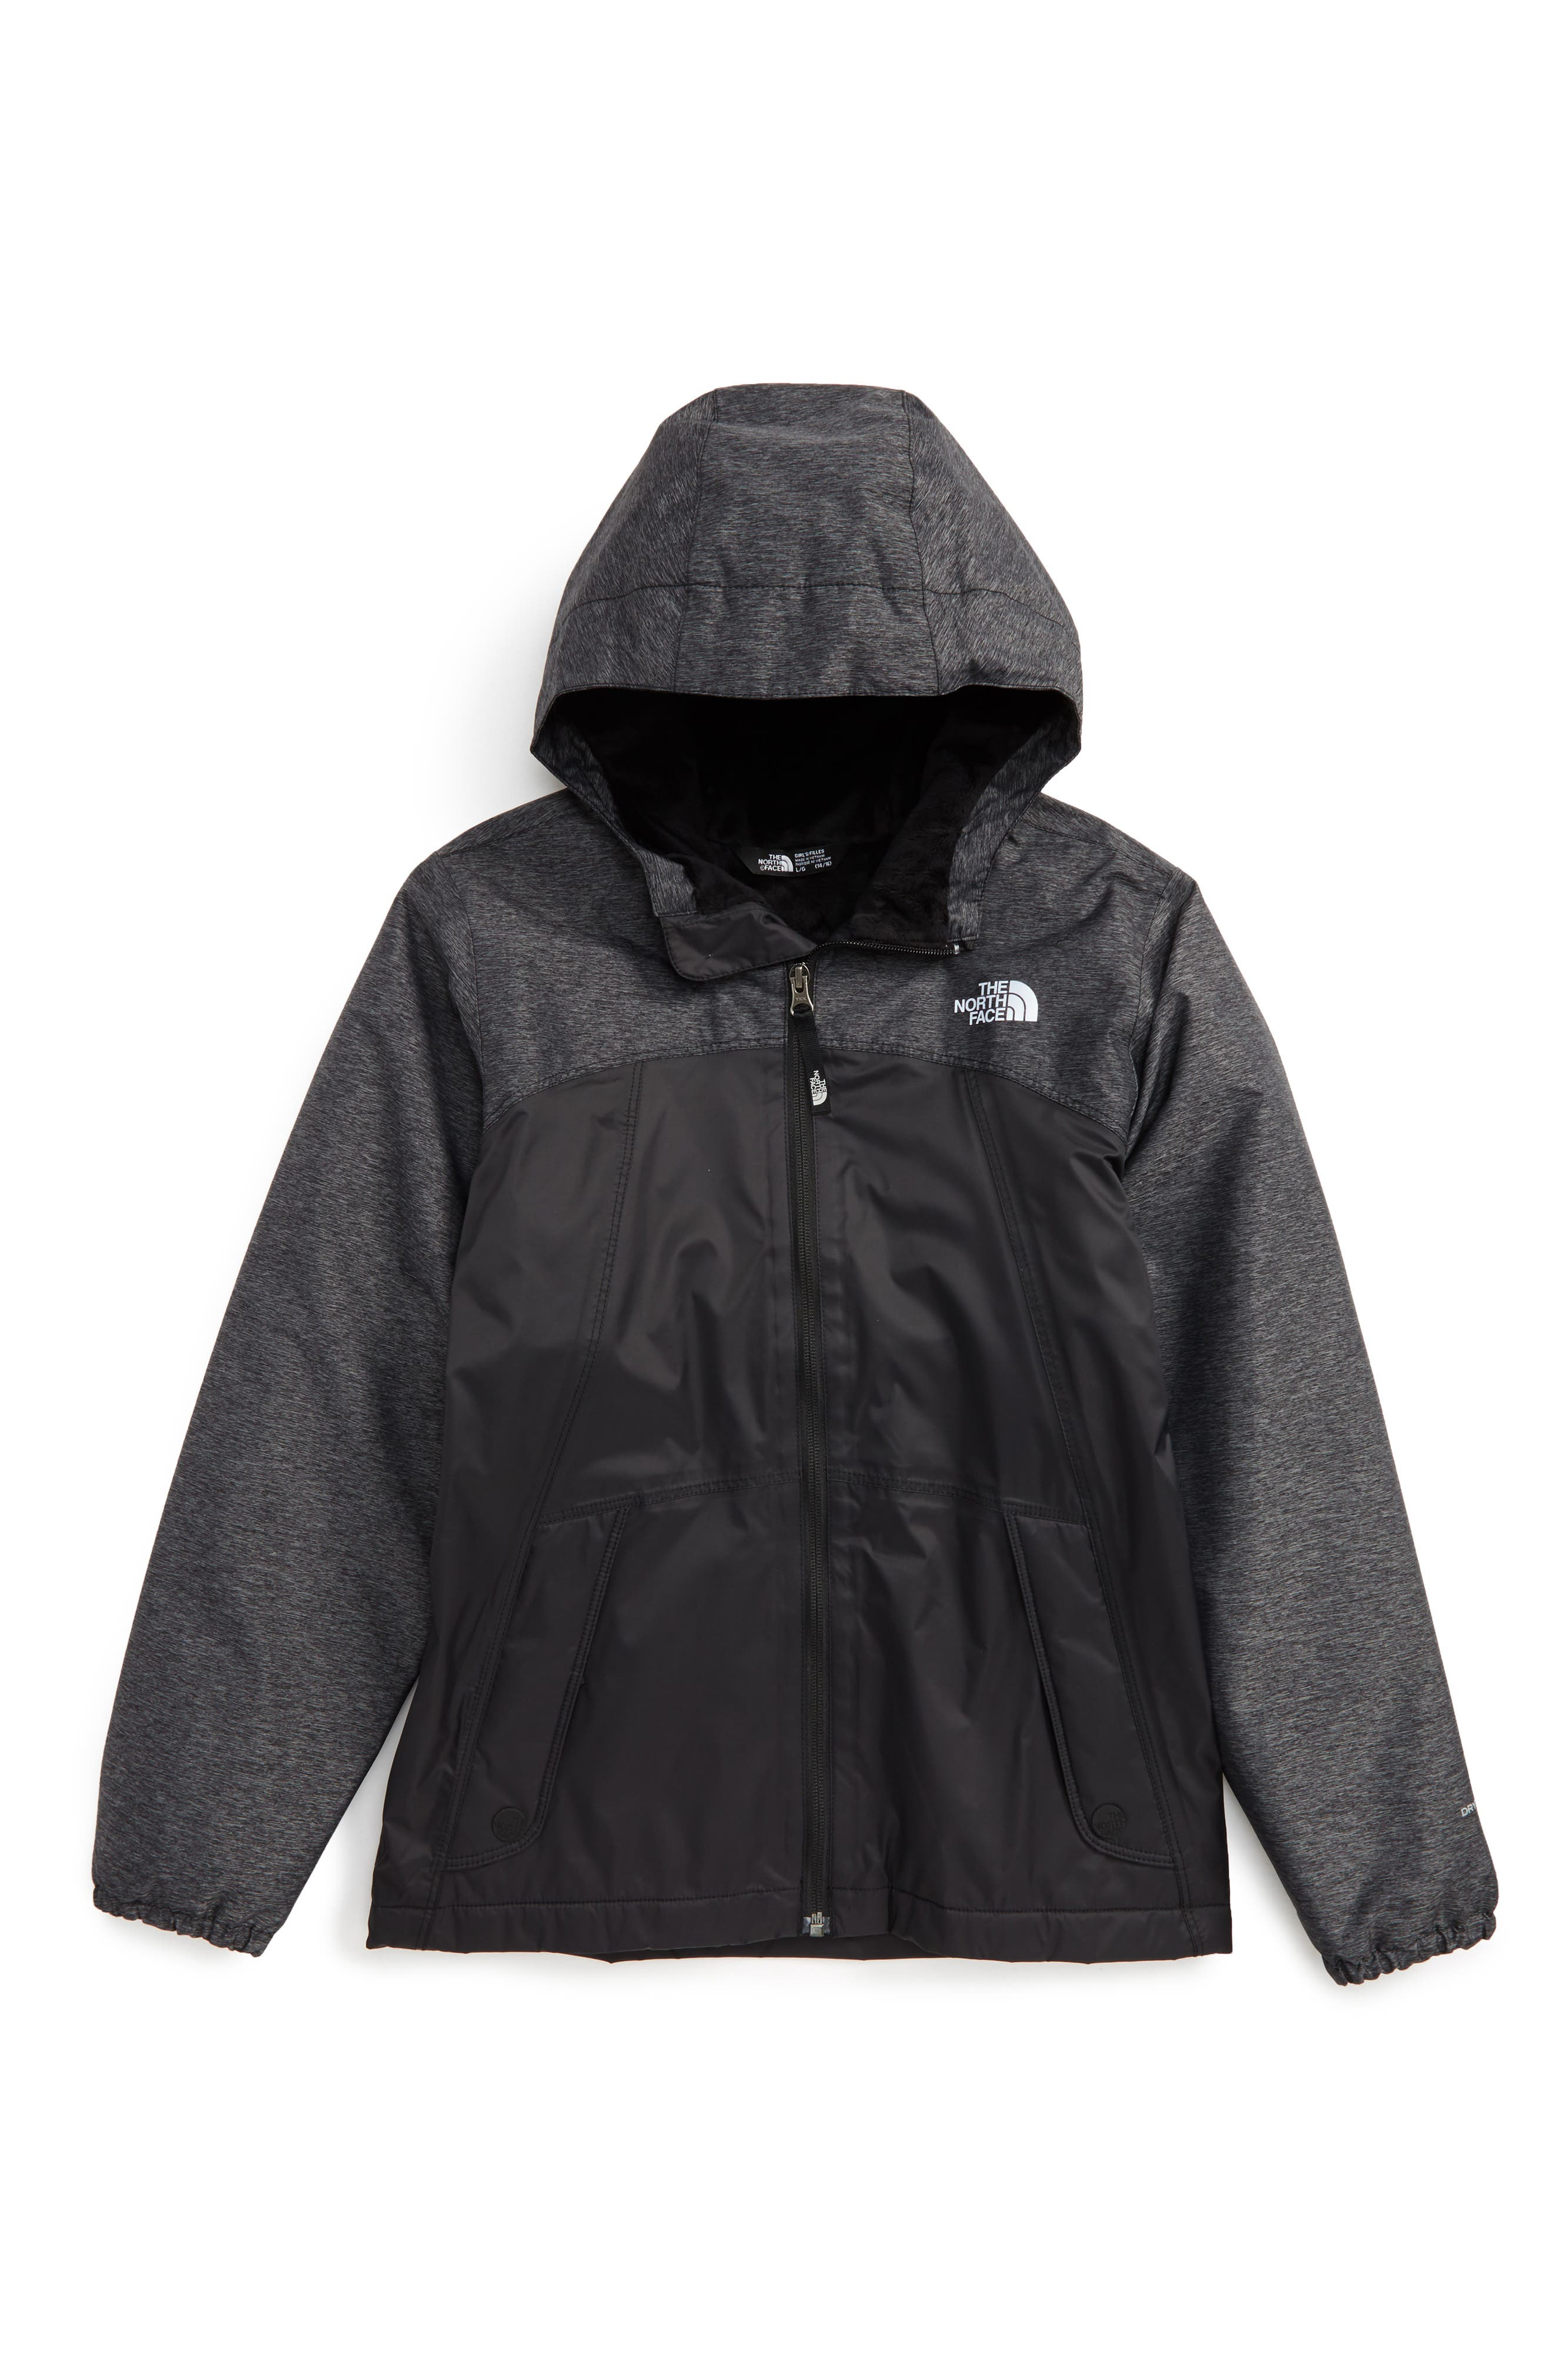 THE NORTH FACE, Warm Storm Hooded Waterproof Jacket, Main thumbnail 1, color, TNF BLACK